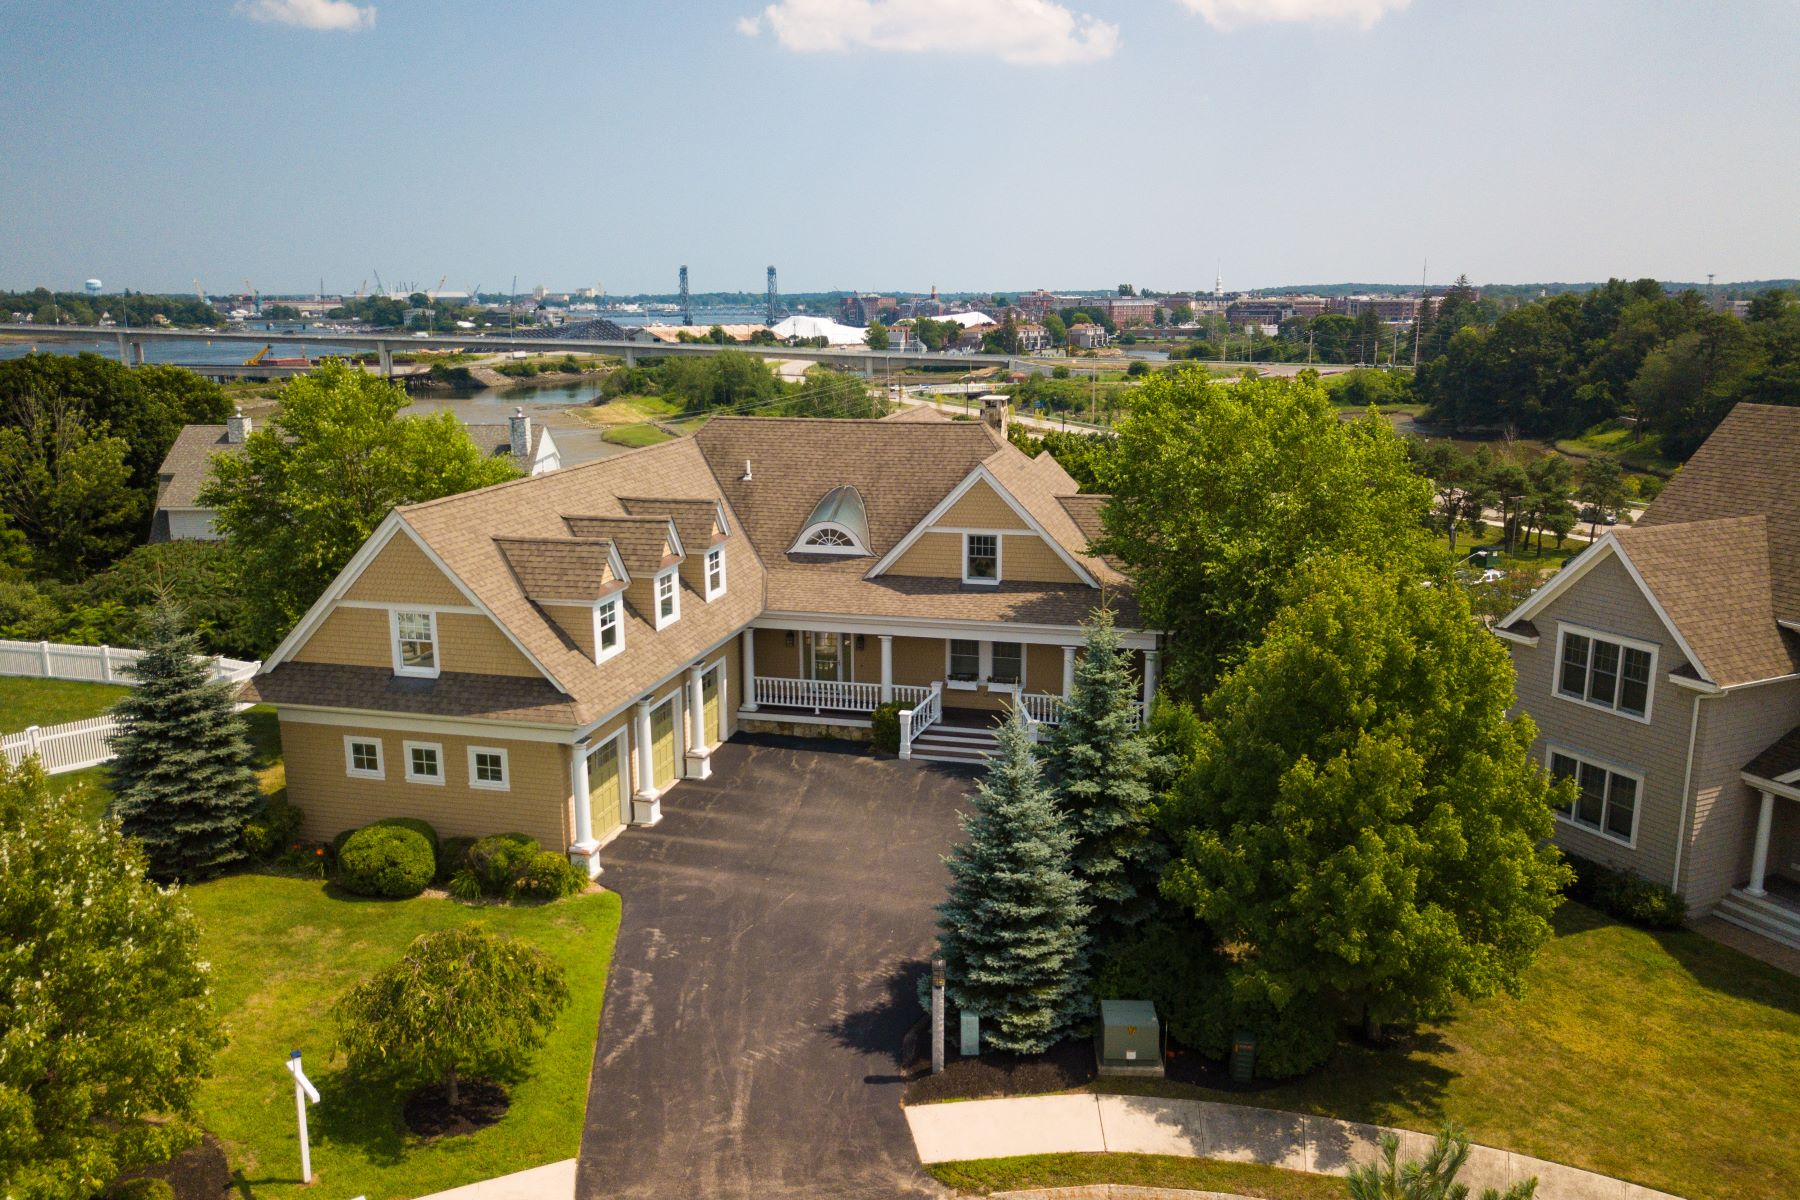 Single Family Home for Sale at Harbor view and Portsmouth city skyline 29 Brigham Lane Portsmouth, New Hampshire 03801 United States